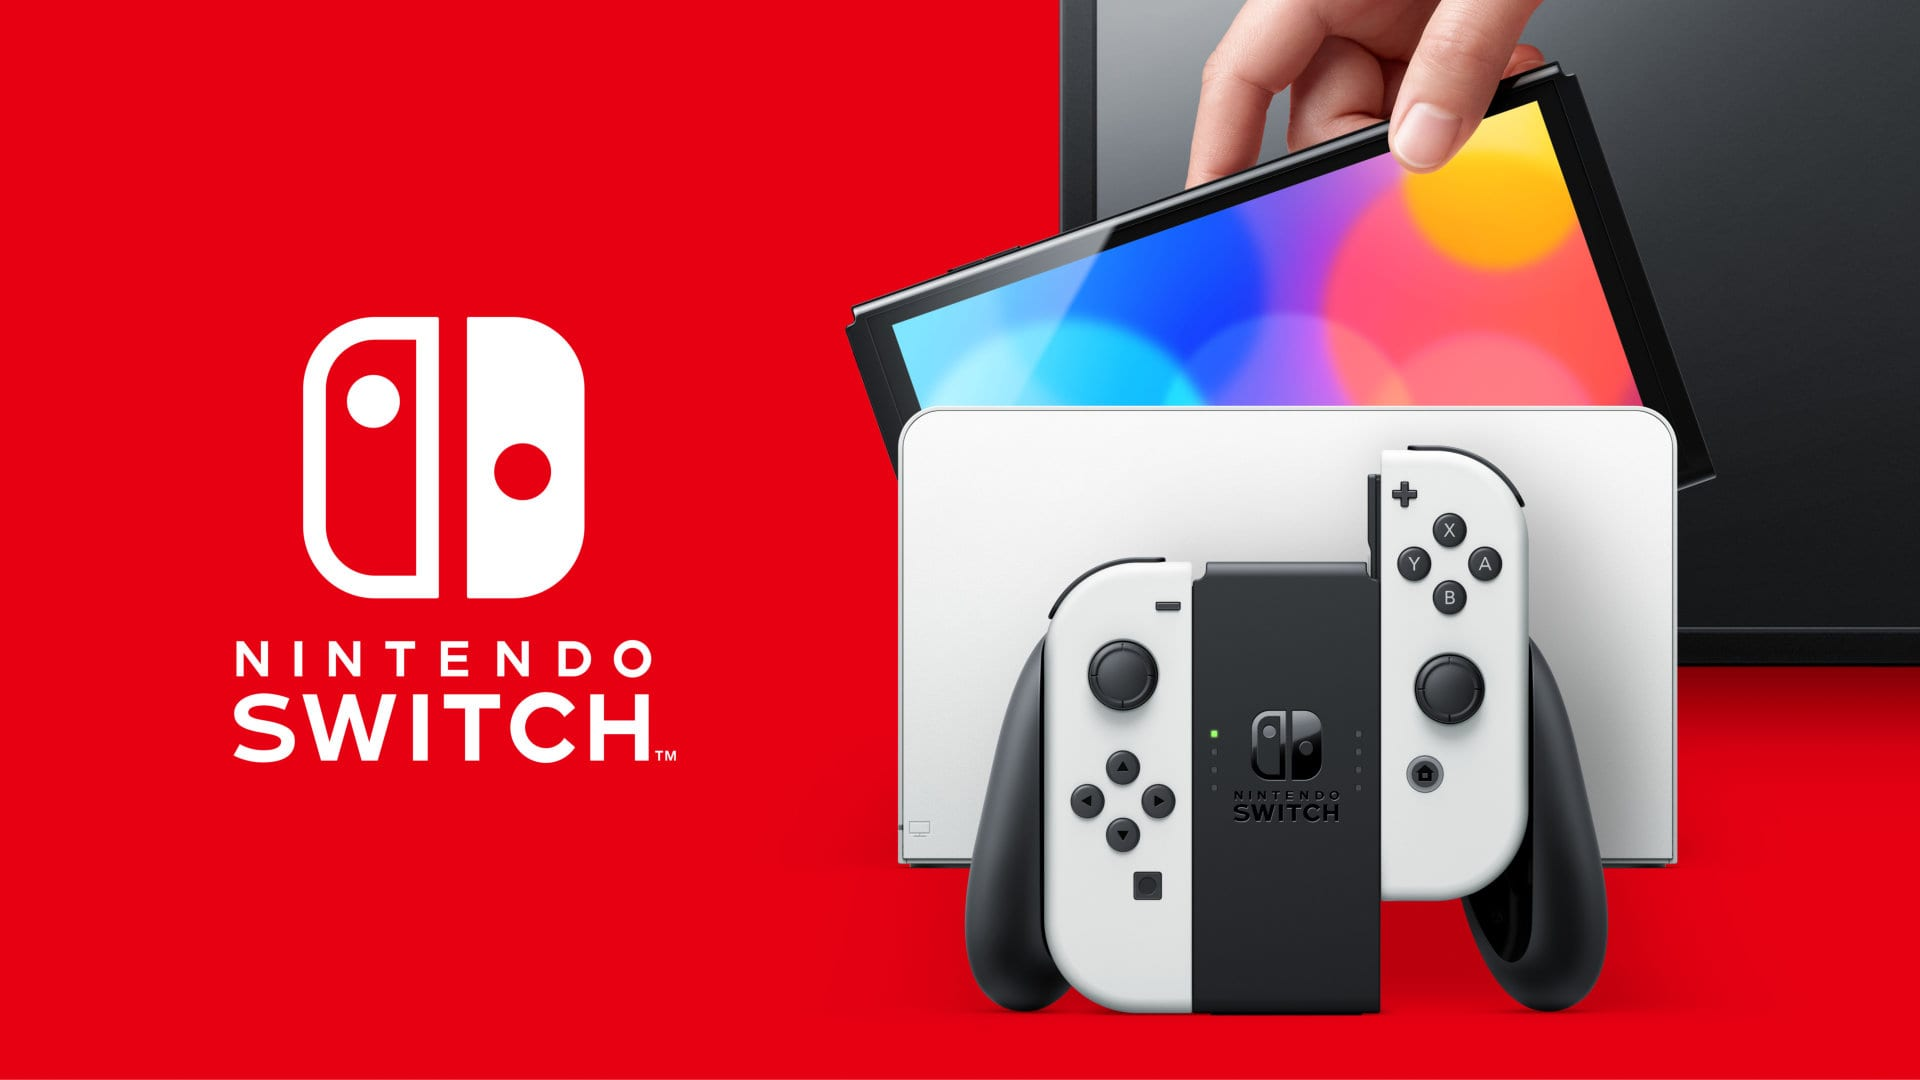 Nintendo Switch OLED Is No More Powerful Than A Normal Switch